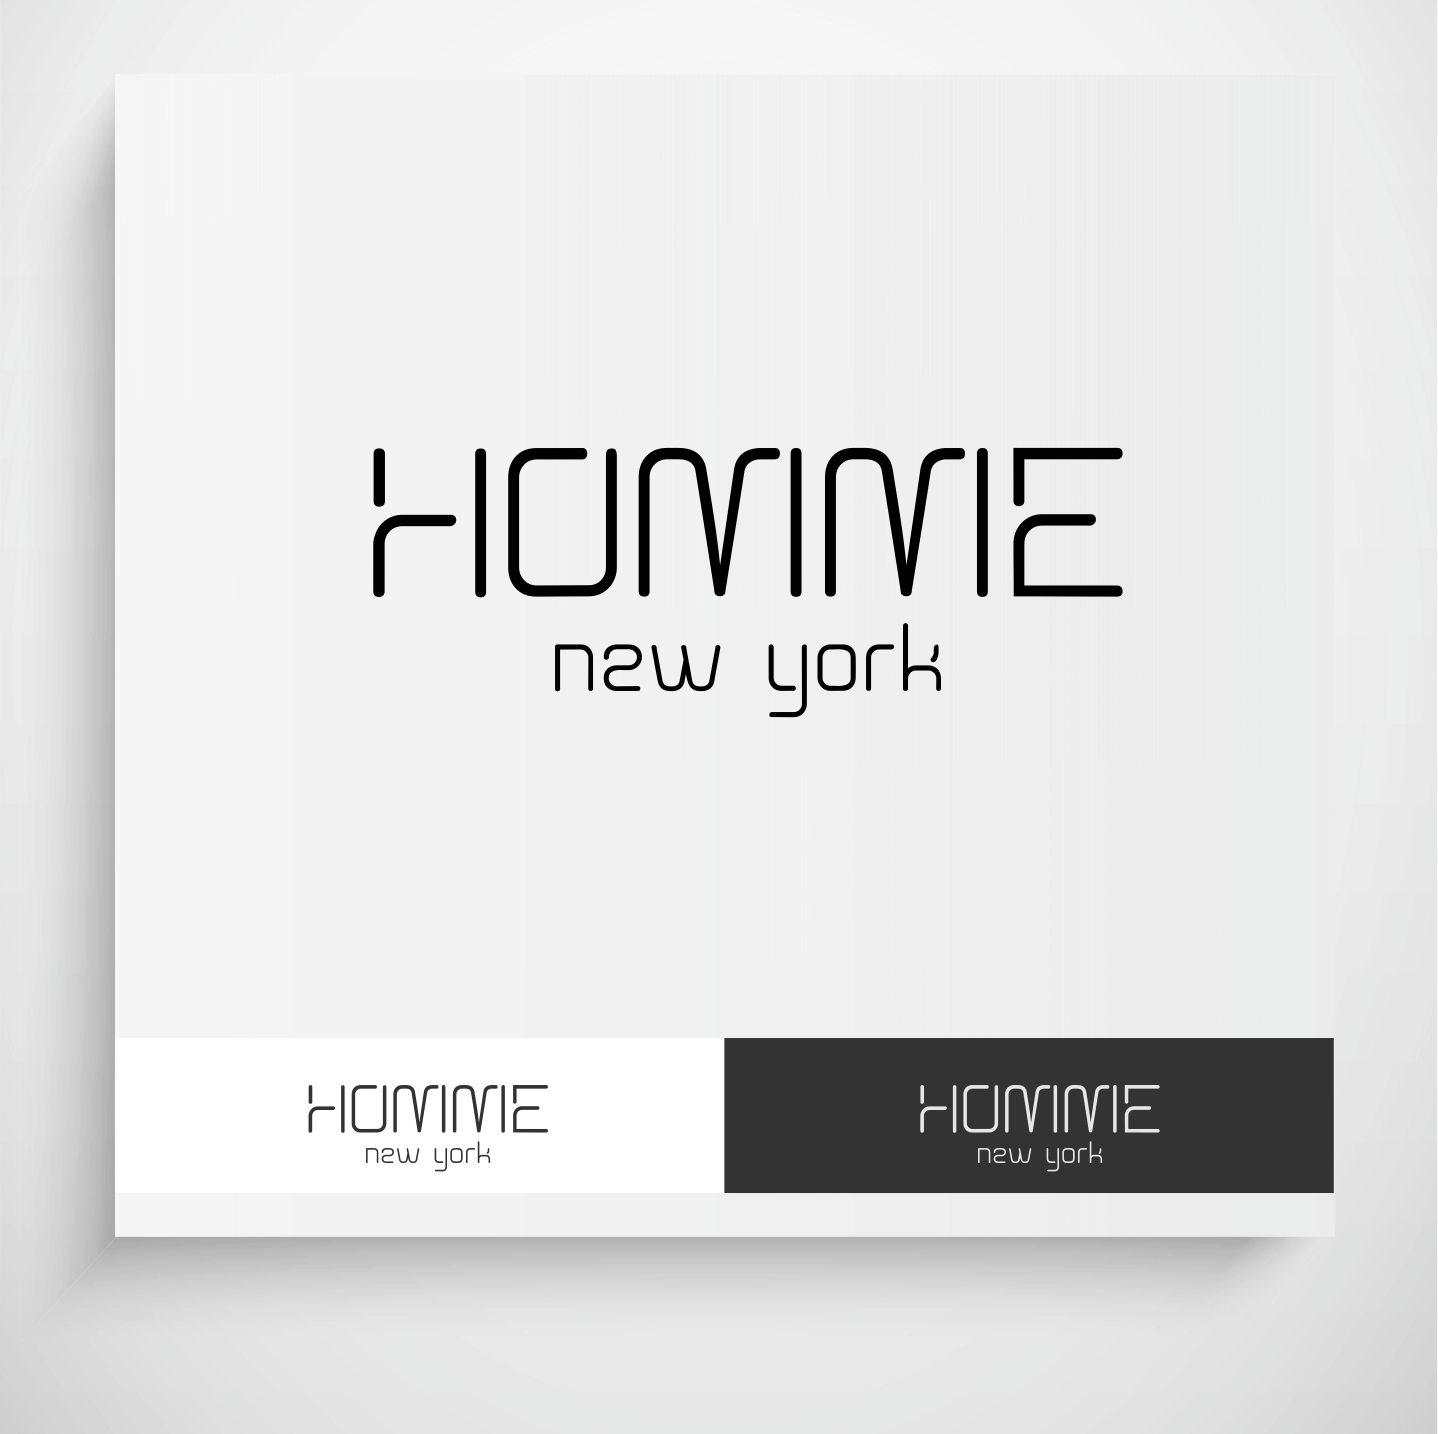 Logo Design by Krzysztof Mokanek - Entry No. 95 in the Logo Design Contest Artistic Logo Design for HOMME | NEW YORK.